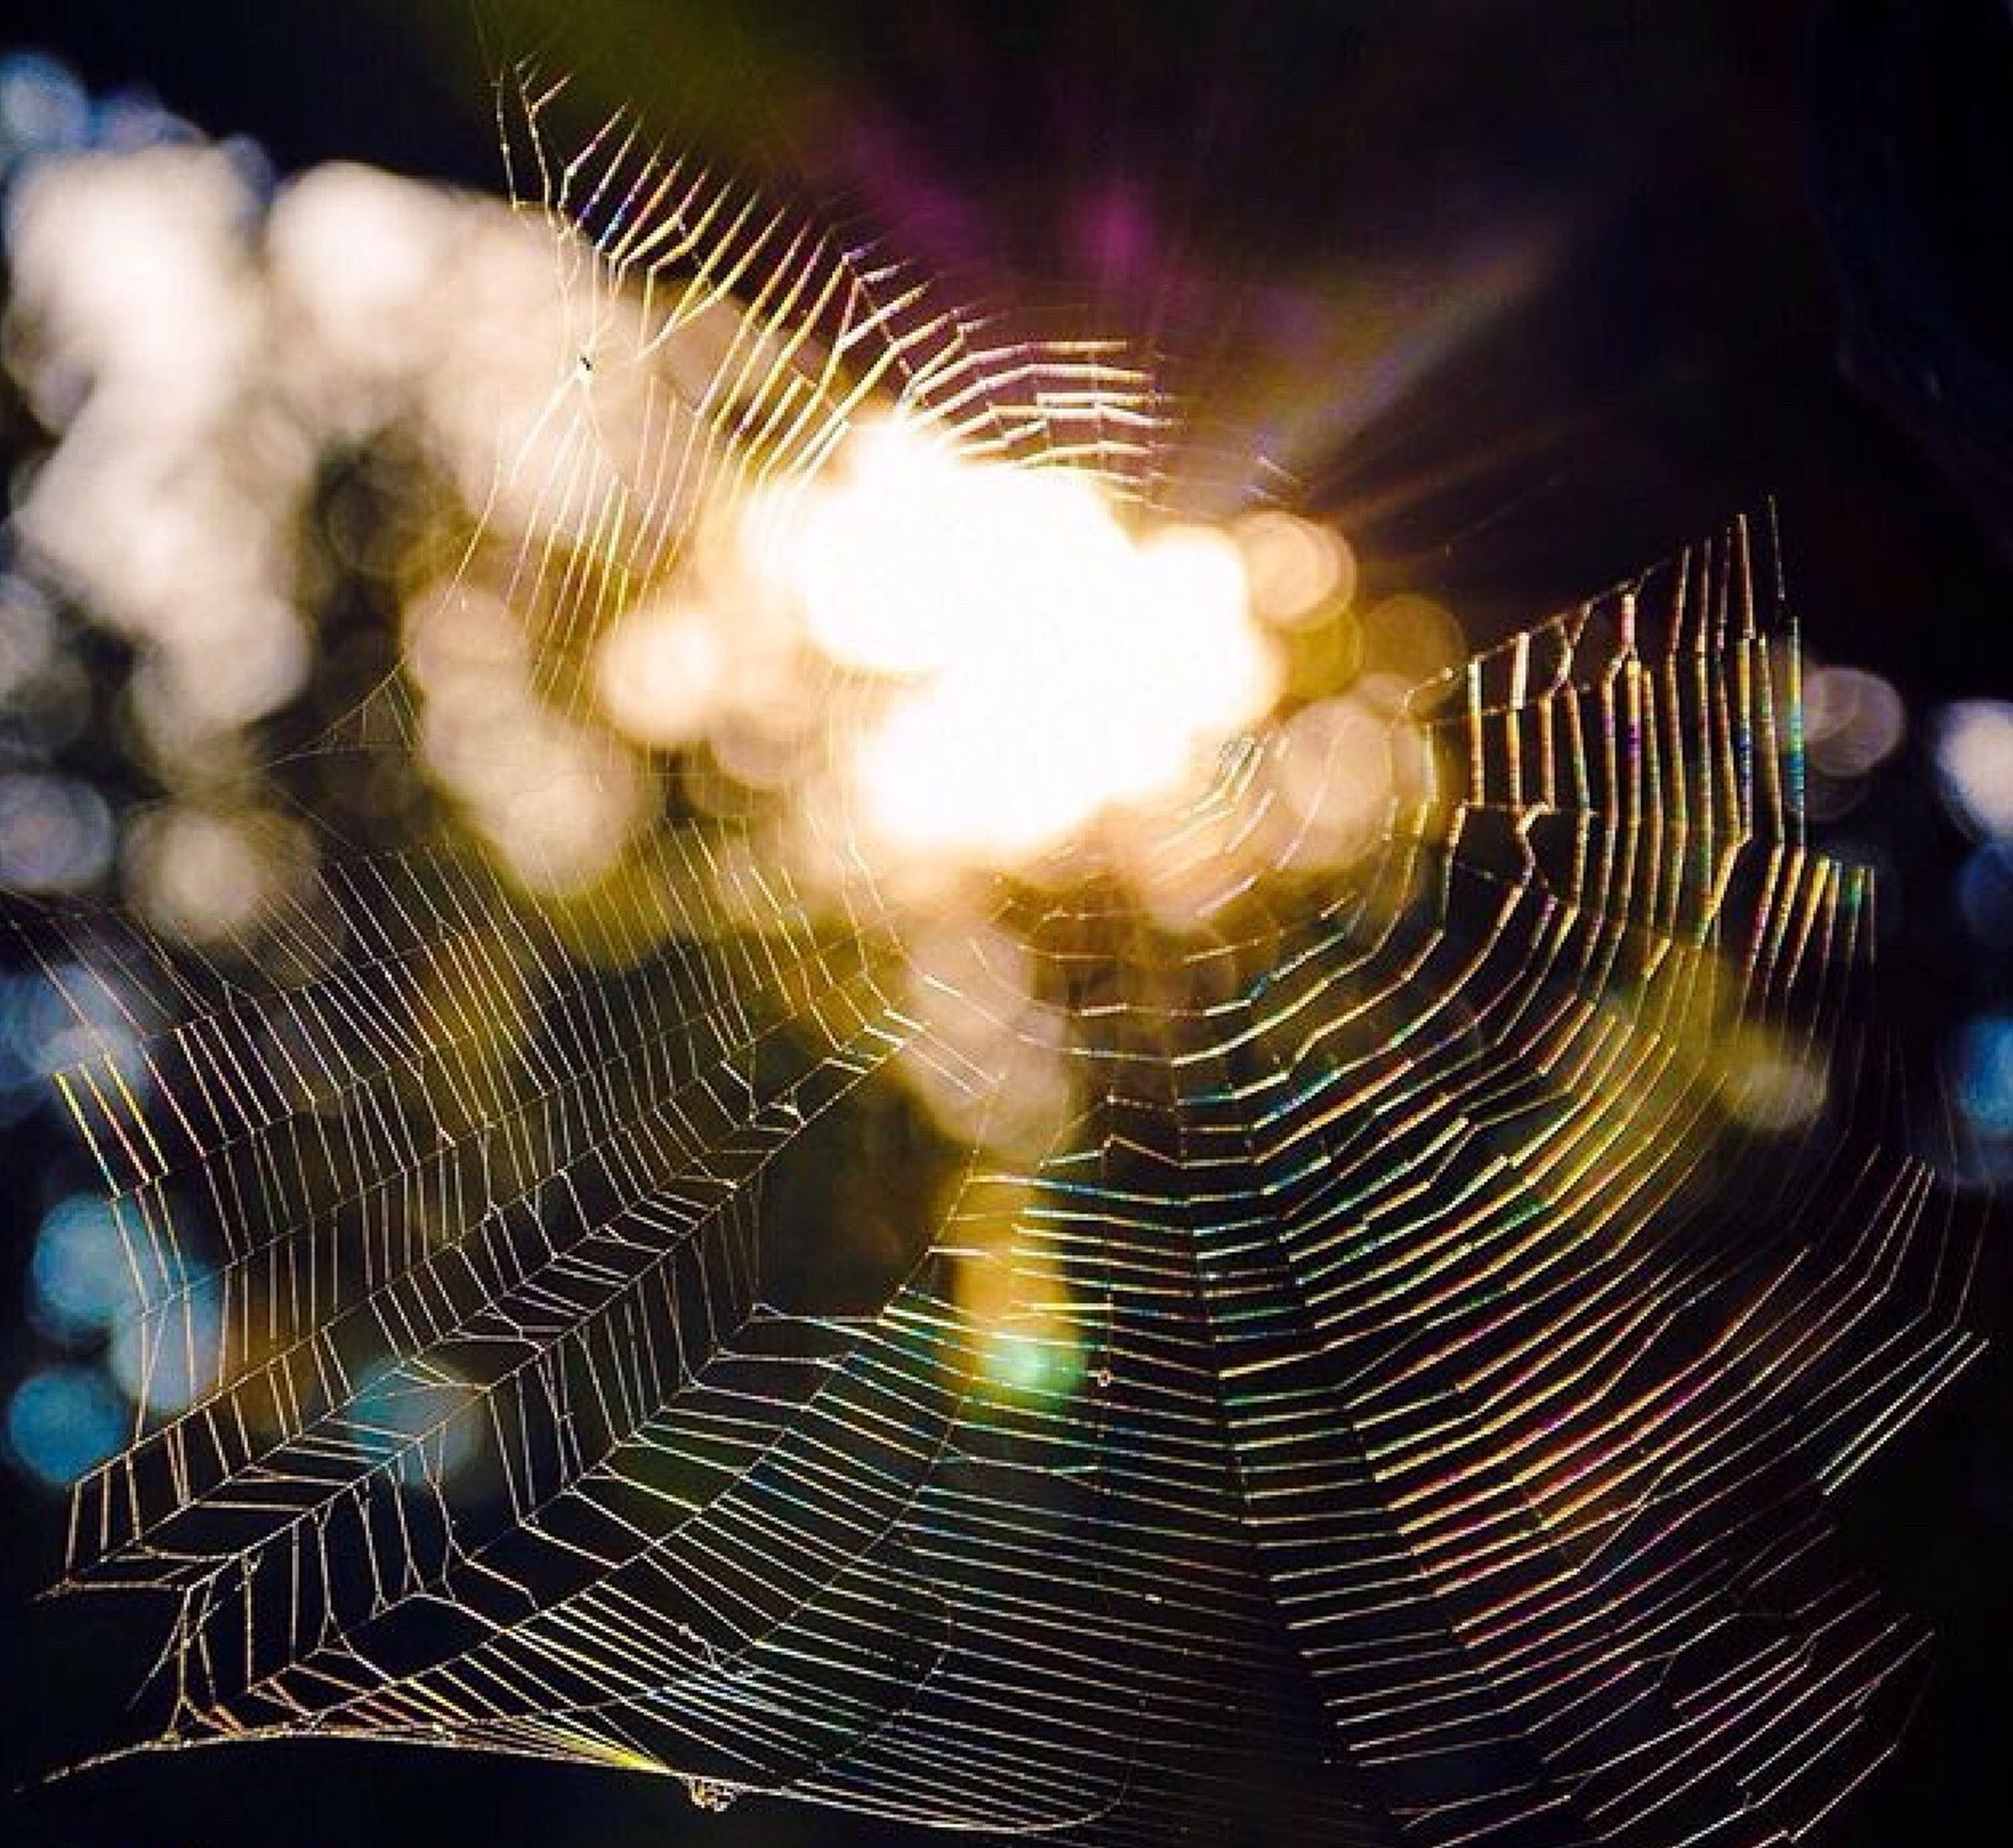 spider web, pattern, animal themes, water, close-up, focus on foreground, natural pattern, nature, indoors, spider, no people, night, motion, fragility, selective focus, wildlife, animals in the wild, one animal